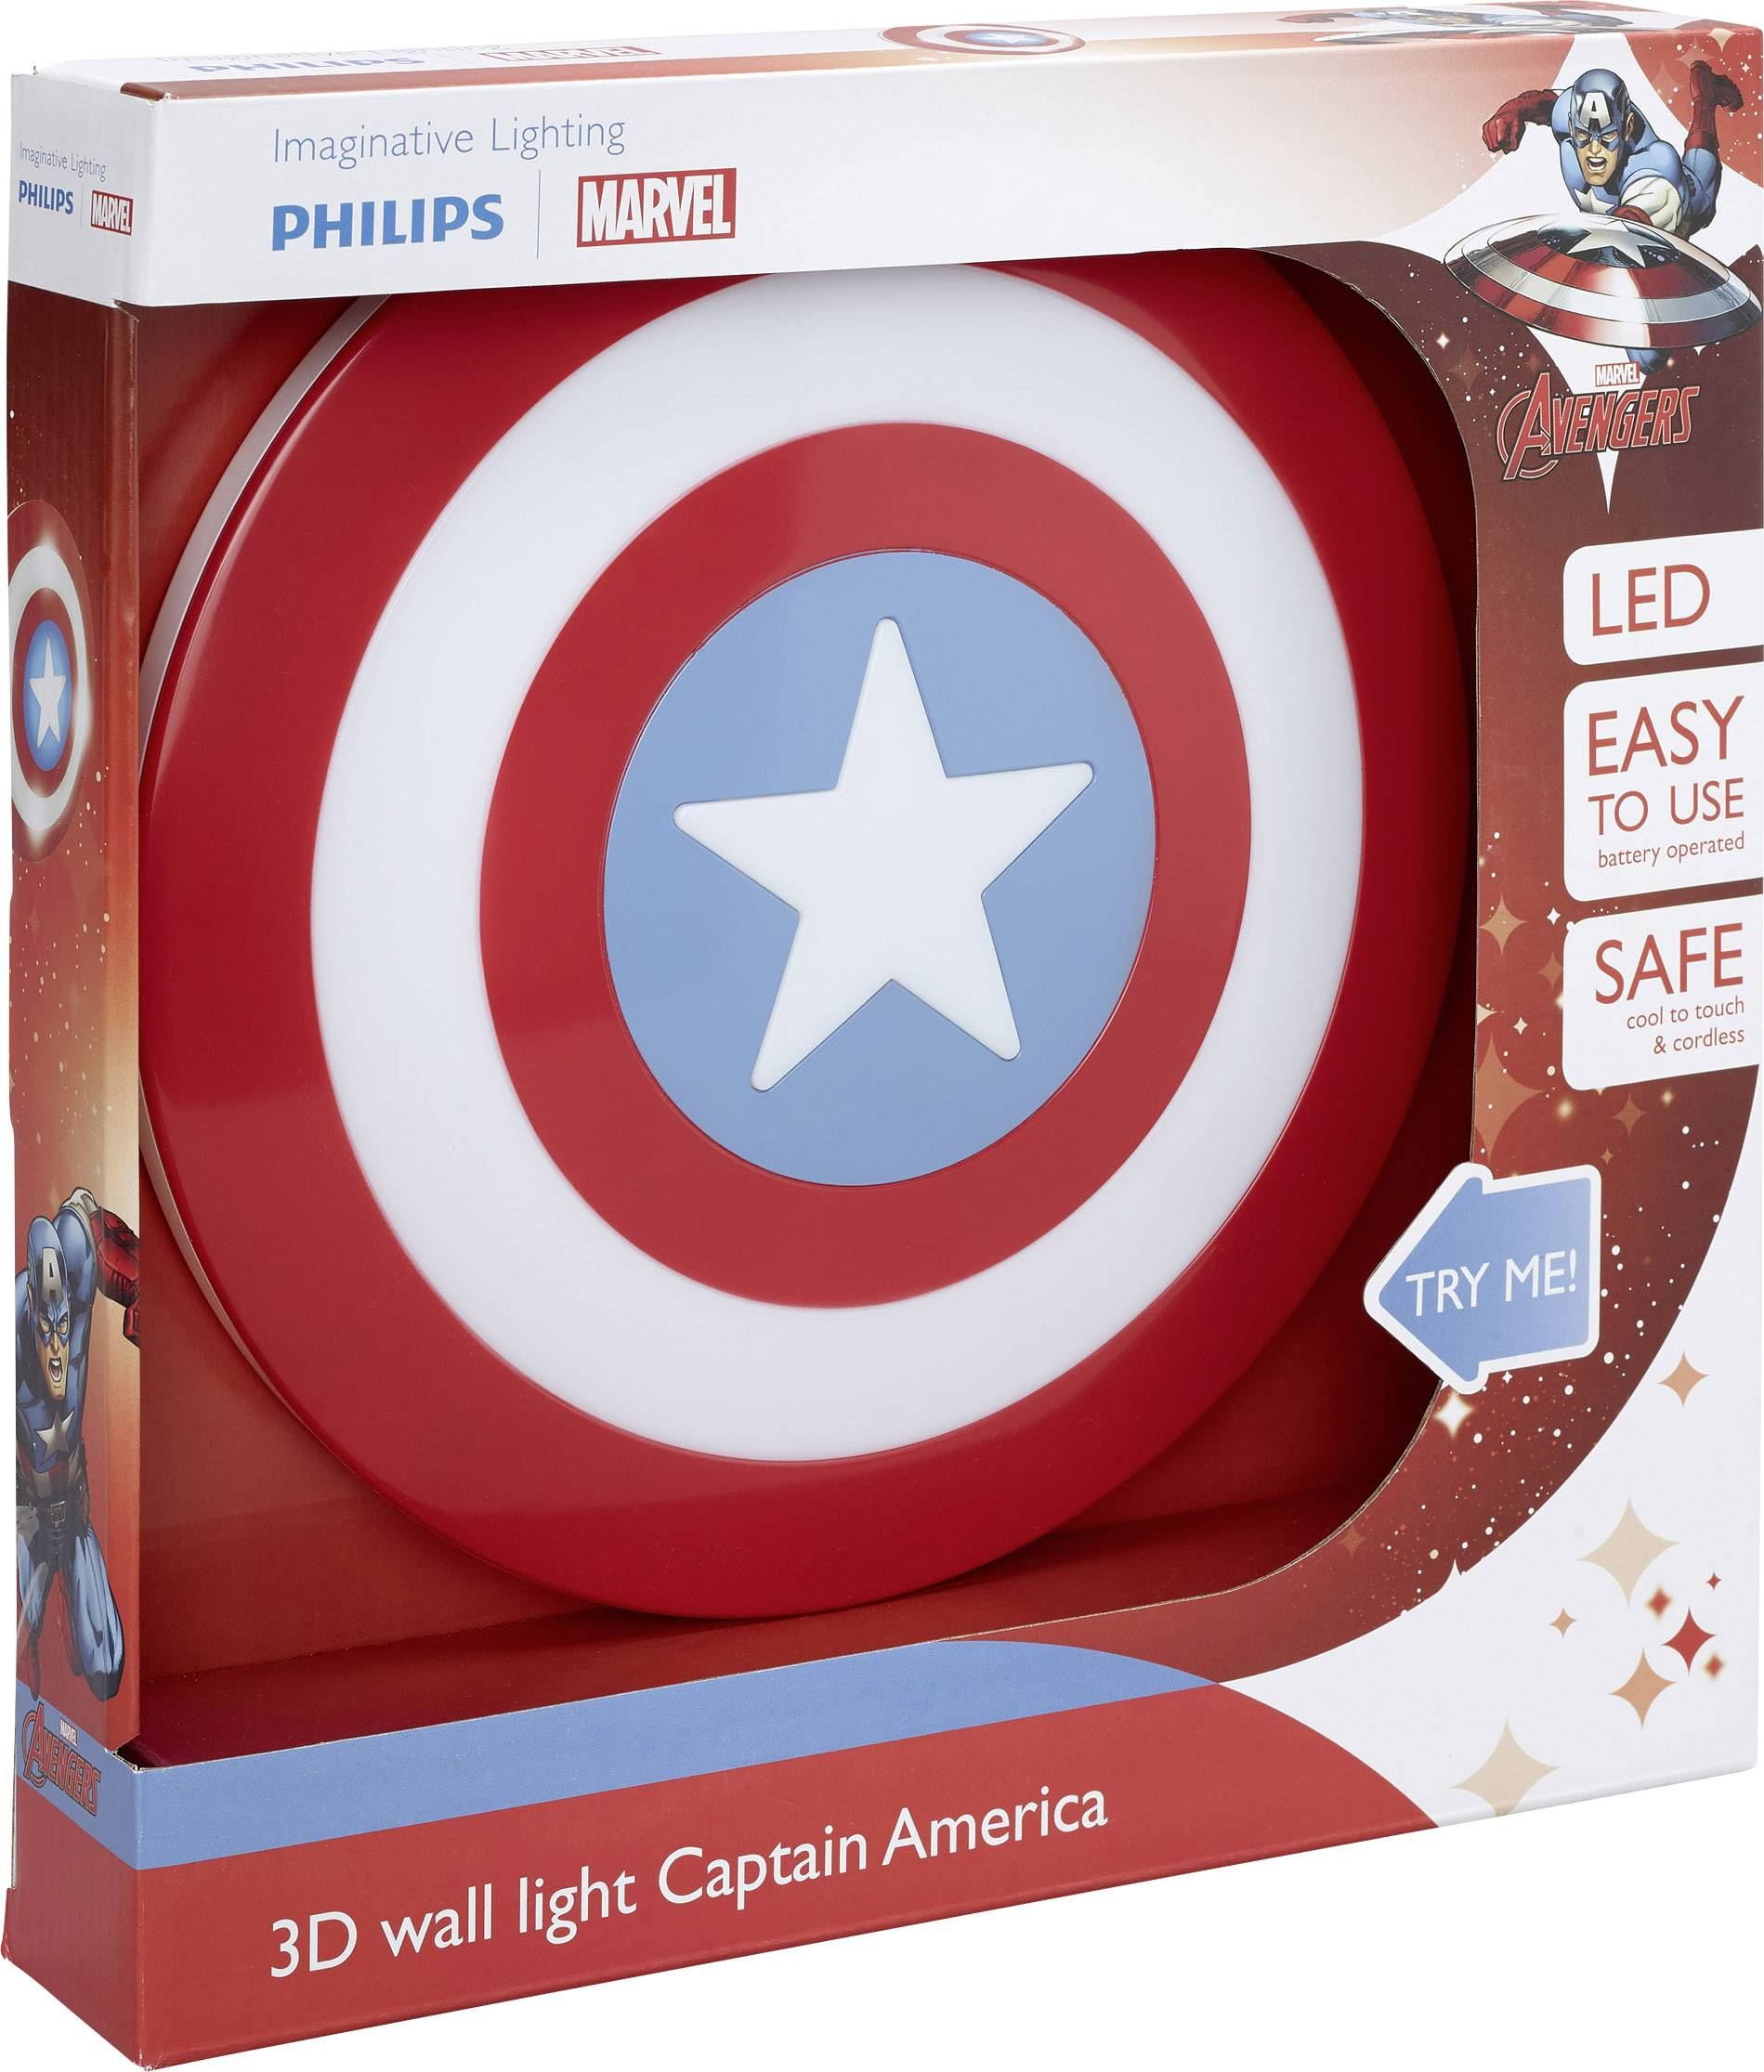 Philips Lighting 7194032P0 LED vägglampa Captain America LED LED fast installerad Flerfärgad